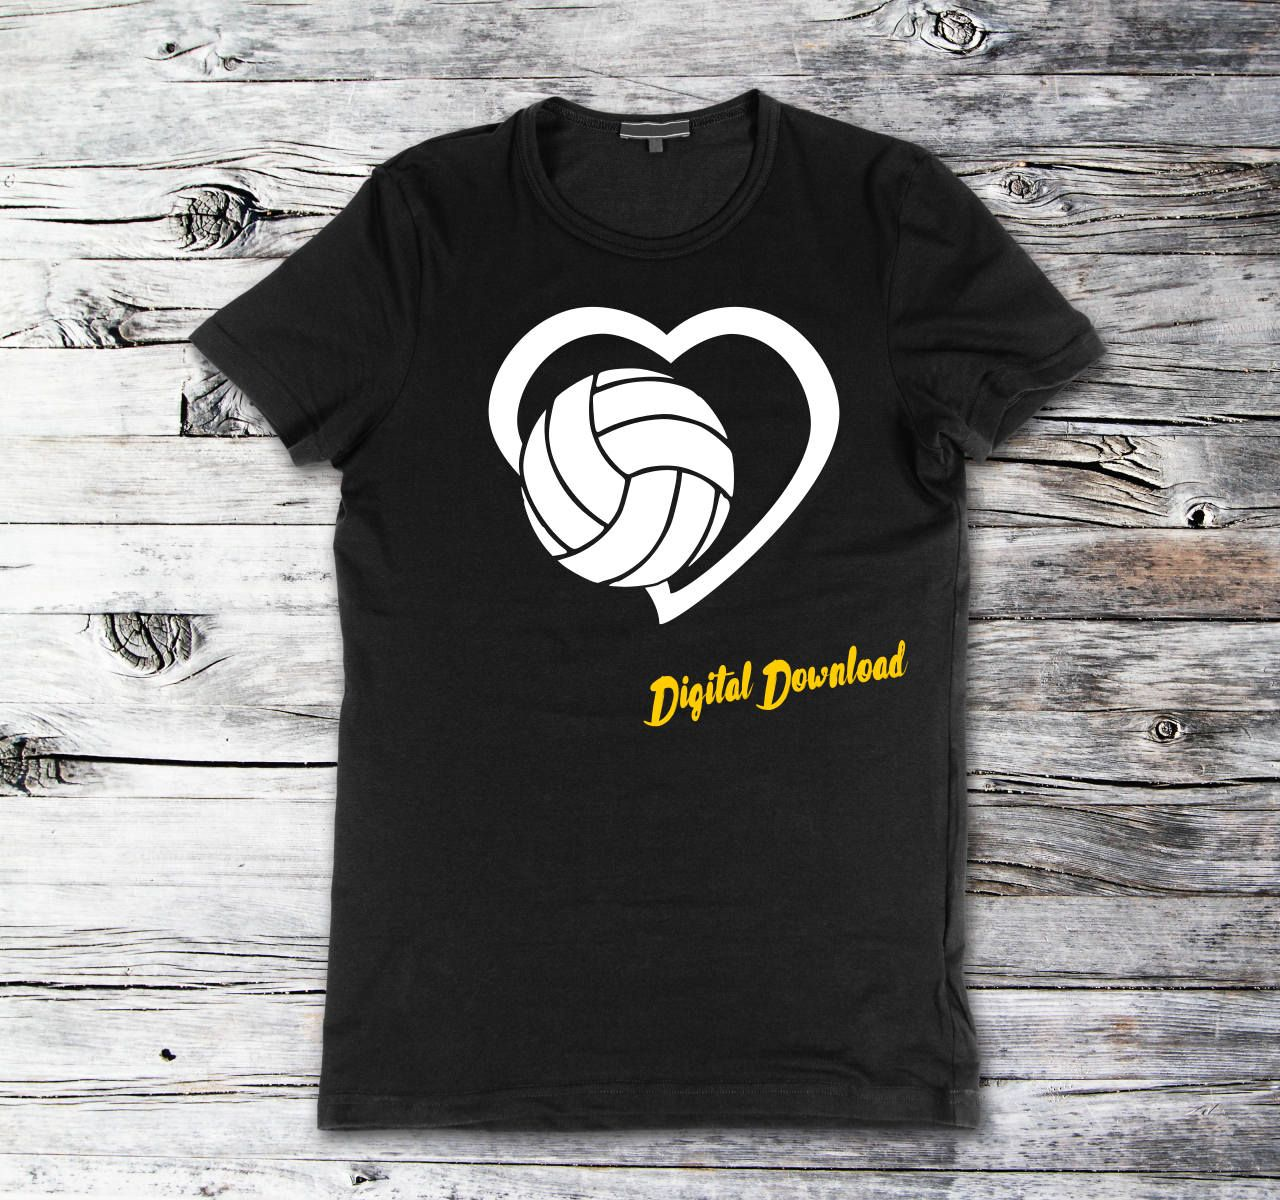 Volleyball Svg Files For Cricut Volleyball Svg File Etsy In 2020 T Shirts With Sayings Volleyball Volleyball Shirts